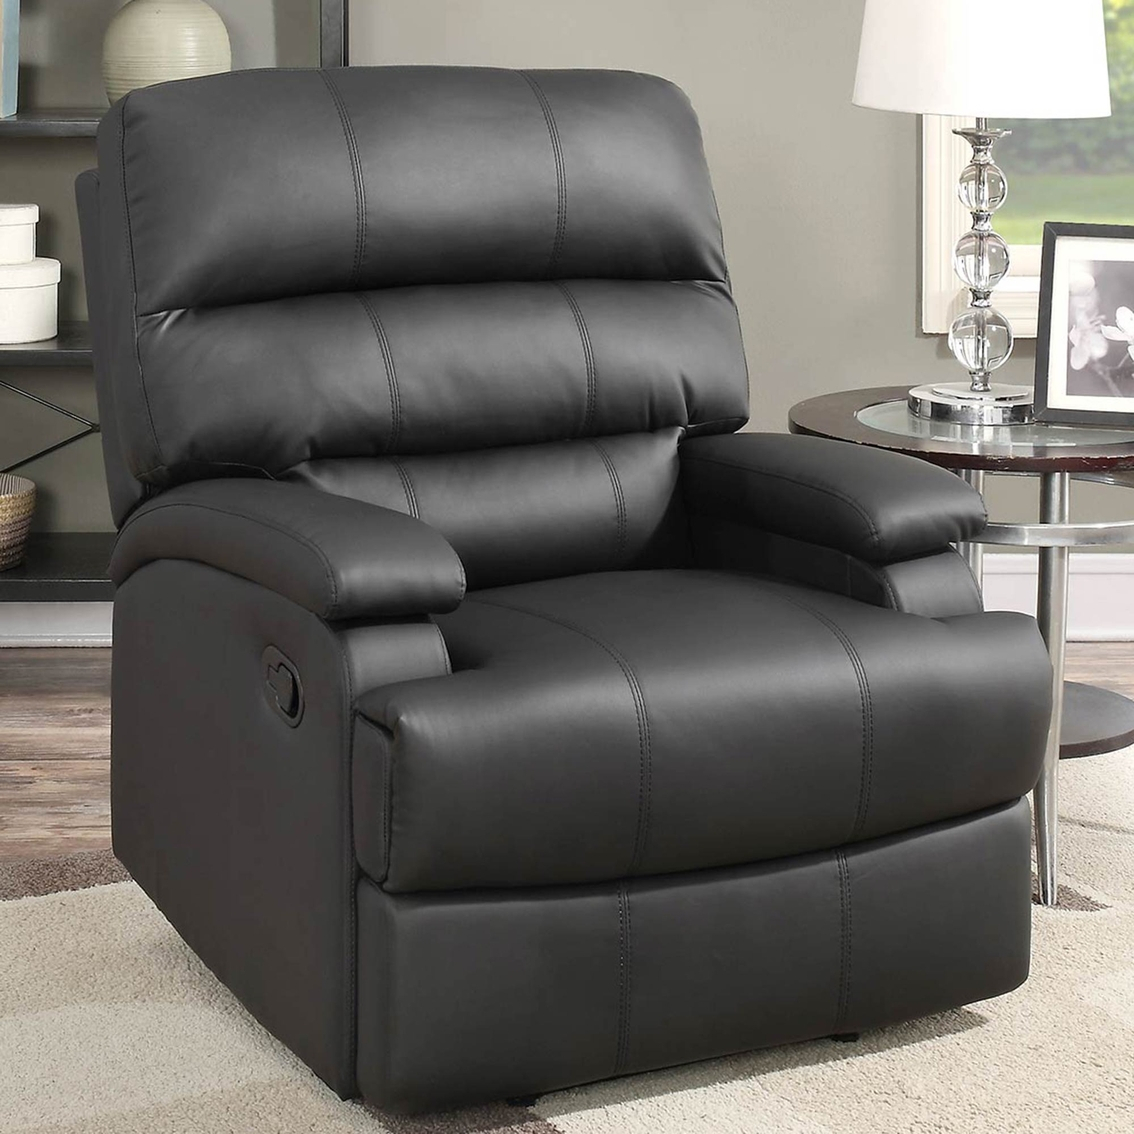 Lifestyle Solutions Rory Reclining Faux Leather Chair | Chairs Regarding Rory Sofa Chairs (View 20 of 25)